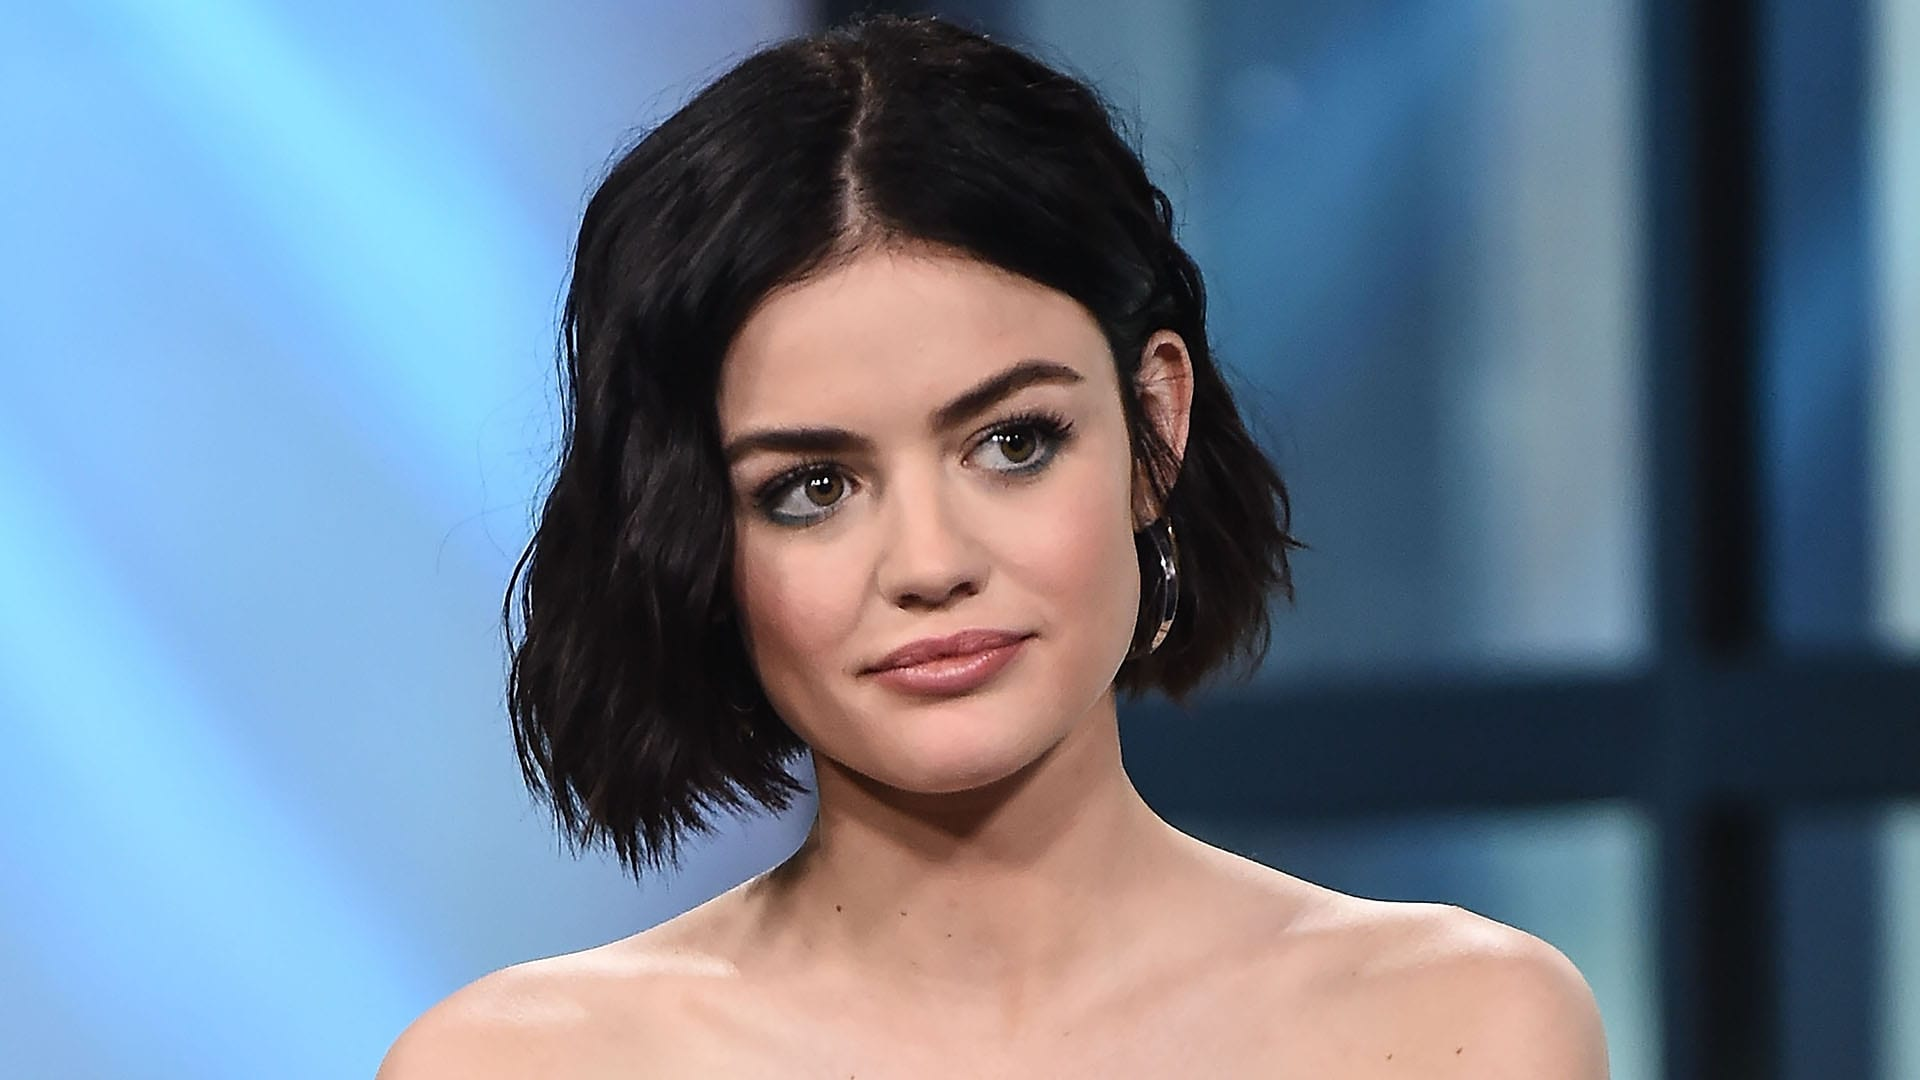 Who Is Lucy Hale Dating In 2021?